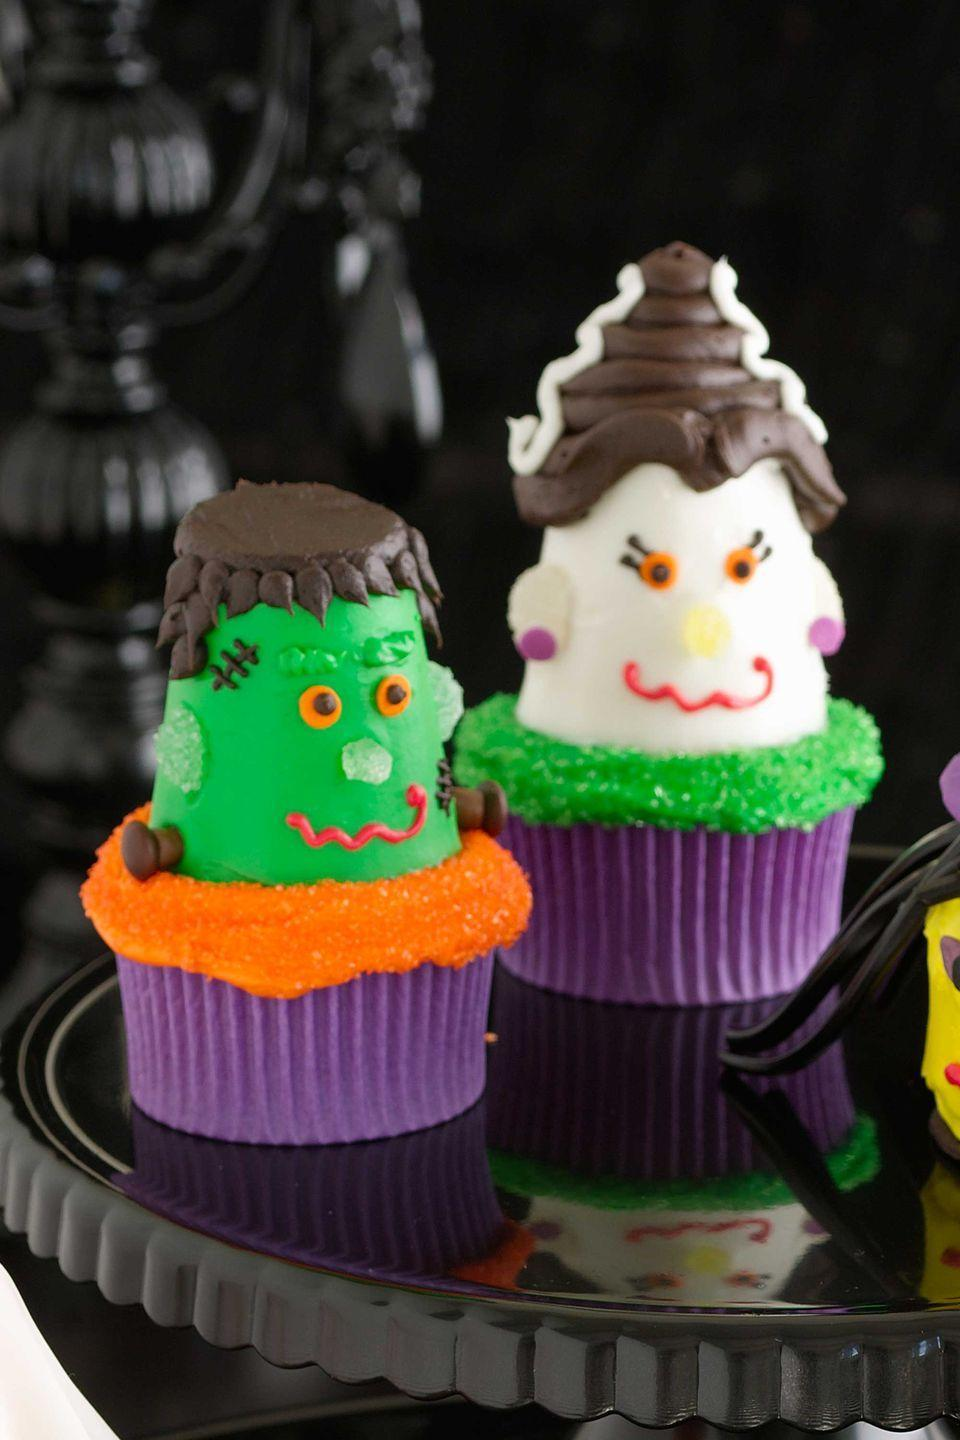 """<p>You'll feel like you just rose from the dead when you bite into this festive cupcake featuring a bright green Frankenstein lookalike, complete with frosting stitches, a gumdrop nose and ears, and Tootsie Roll and M&M bolts. Don't forget to make him a cupcake that resembles his bride.</p><p><a href=""""https://www.womansday.com/food-recipes/food-drinks/recipes/a10783/frankenstein-cupcakes-122189/"""" rel=""""nofollow noopener"""" target=""""_blank"""" data-ylk=""""slk:Get the Frankenstein Cupcakes recipe."""" class=""""link rapid-noclick-resp""""><em>Get the Frankenstein Cupcakes recipe.</em></a></p>"""